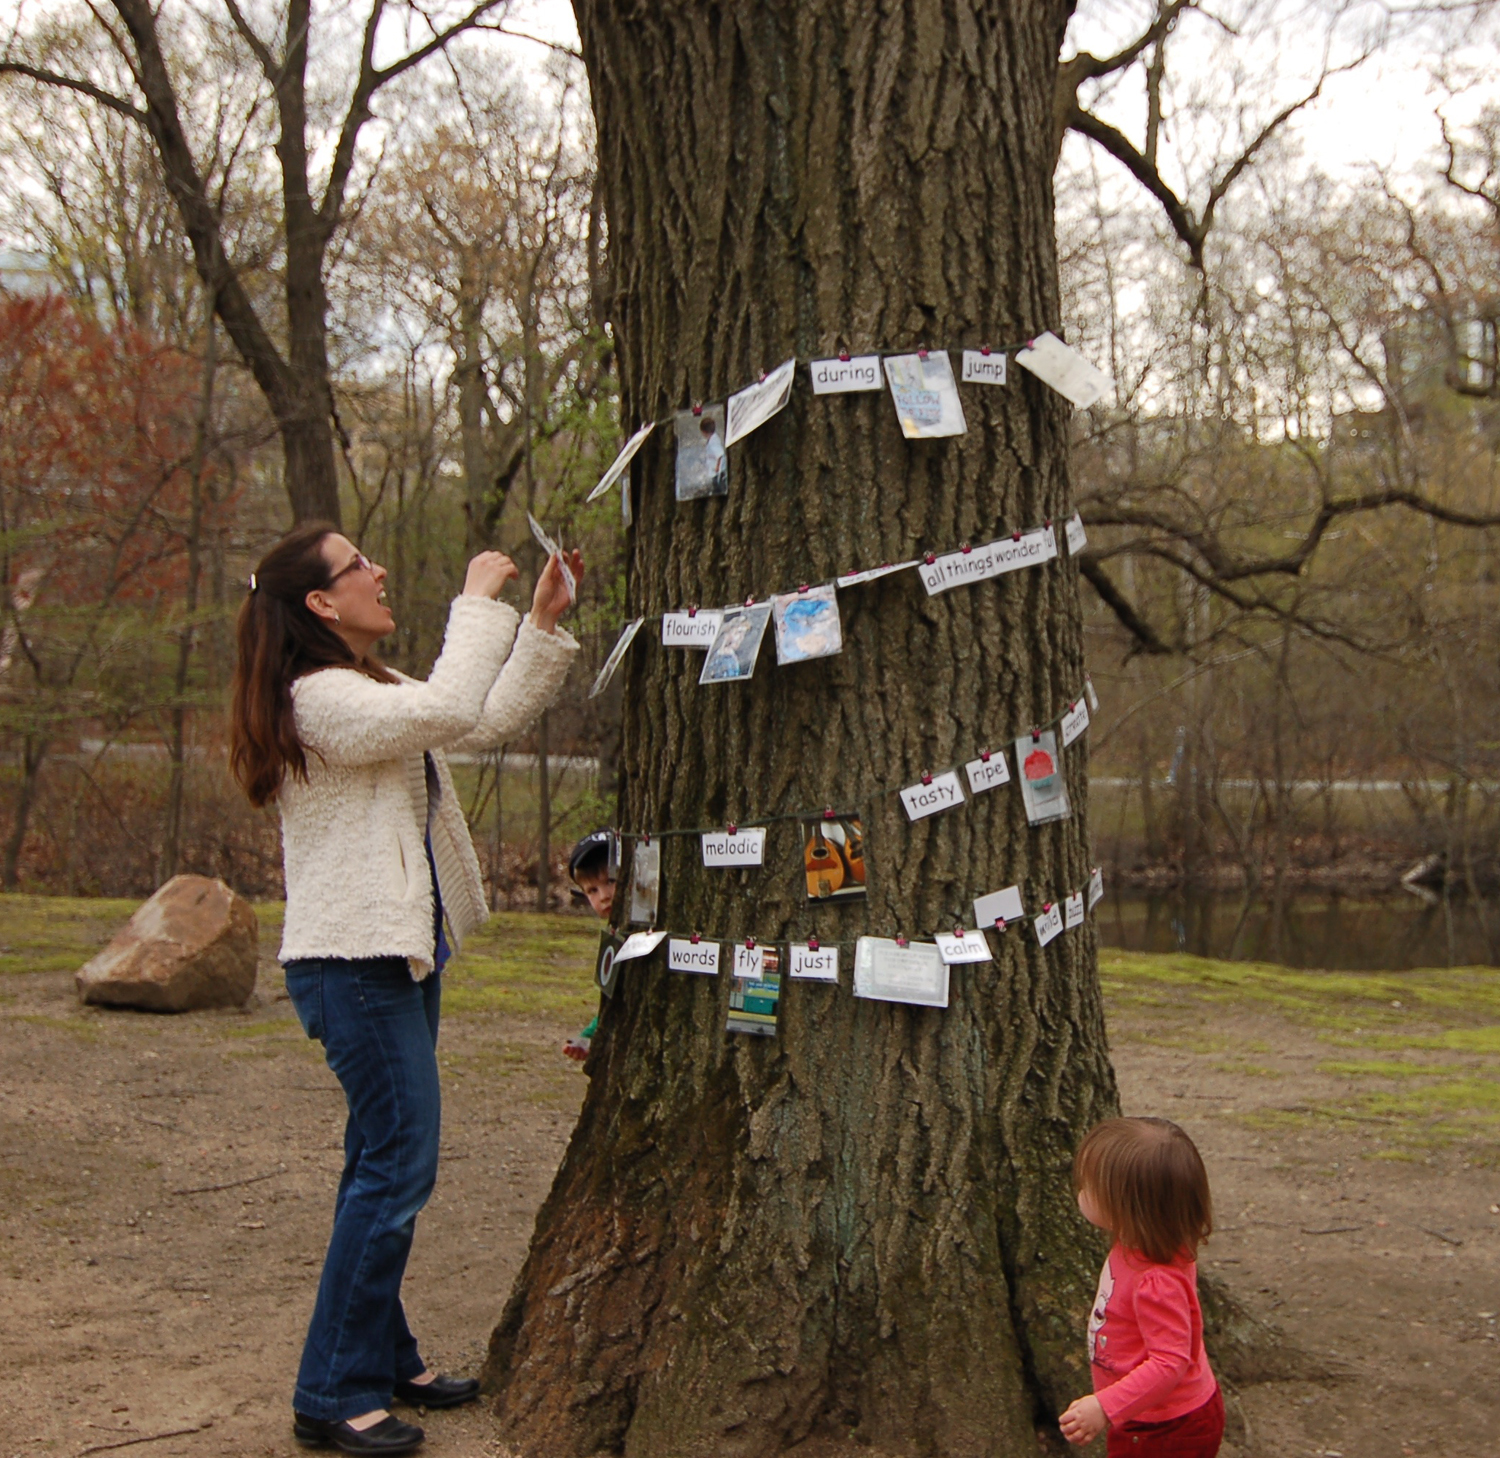 Family+playing+at+the+communiTree.jpg